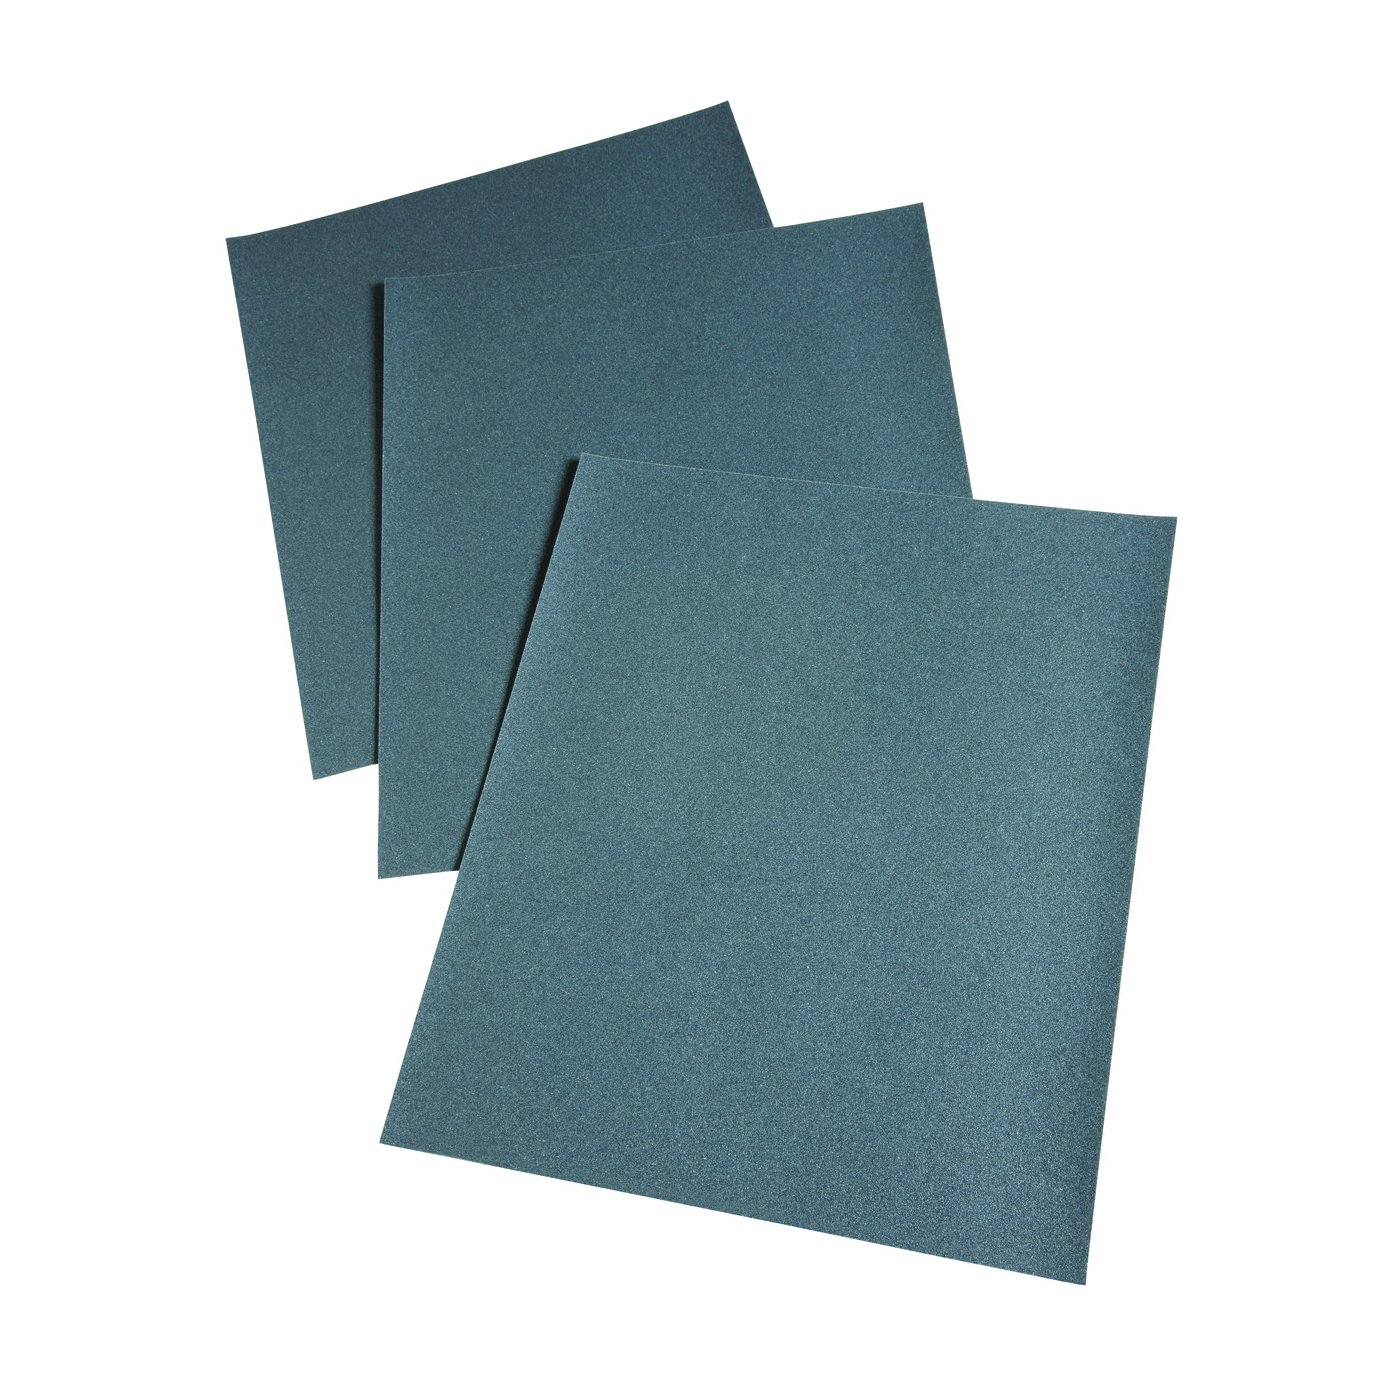 Picture of 3M 2018 Wet/Dry Sandpaper, 11 in L, 9 in W, 80 Grit, Medium, Silicone Carbide Abrasive